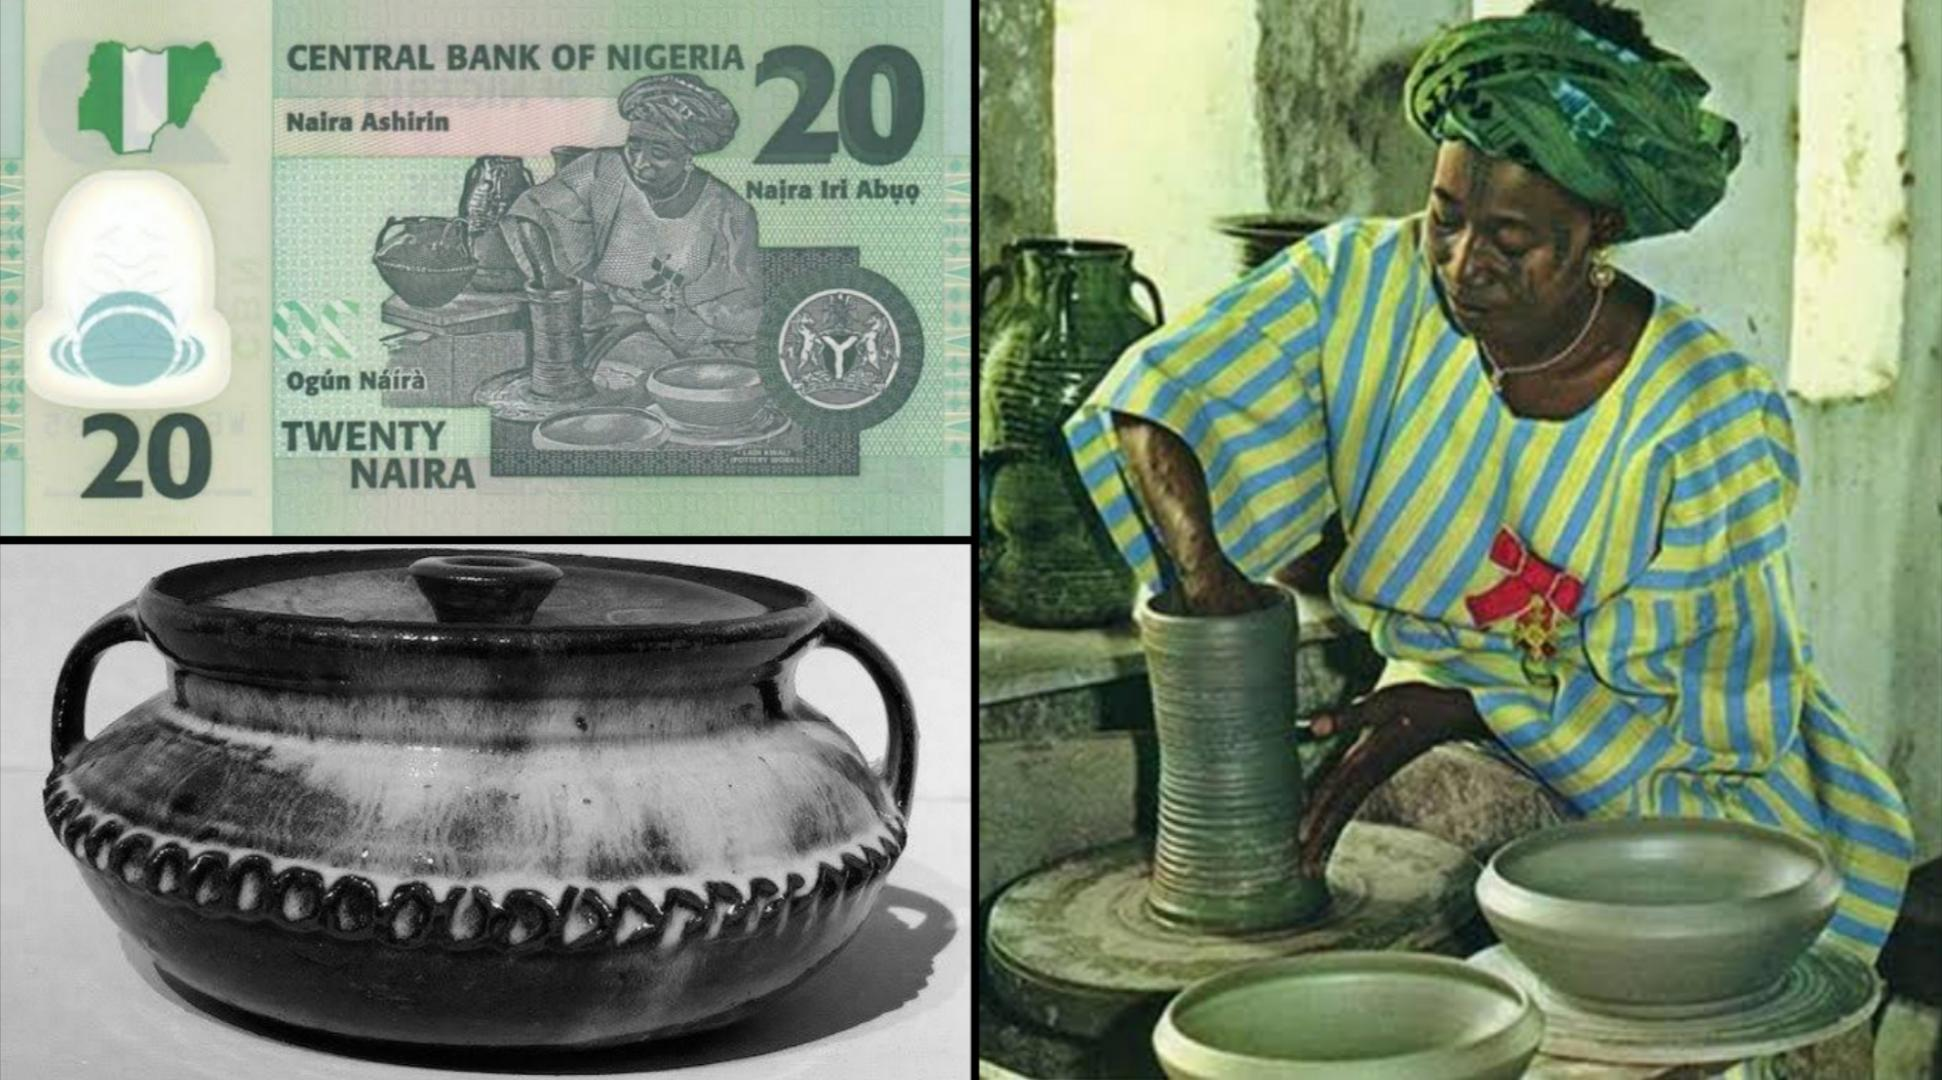 Story of Ladi Kwali. The legendary woman on Nigerian currency